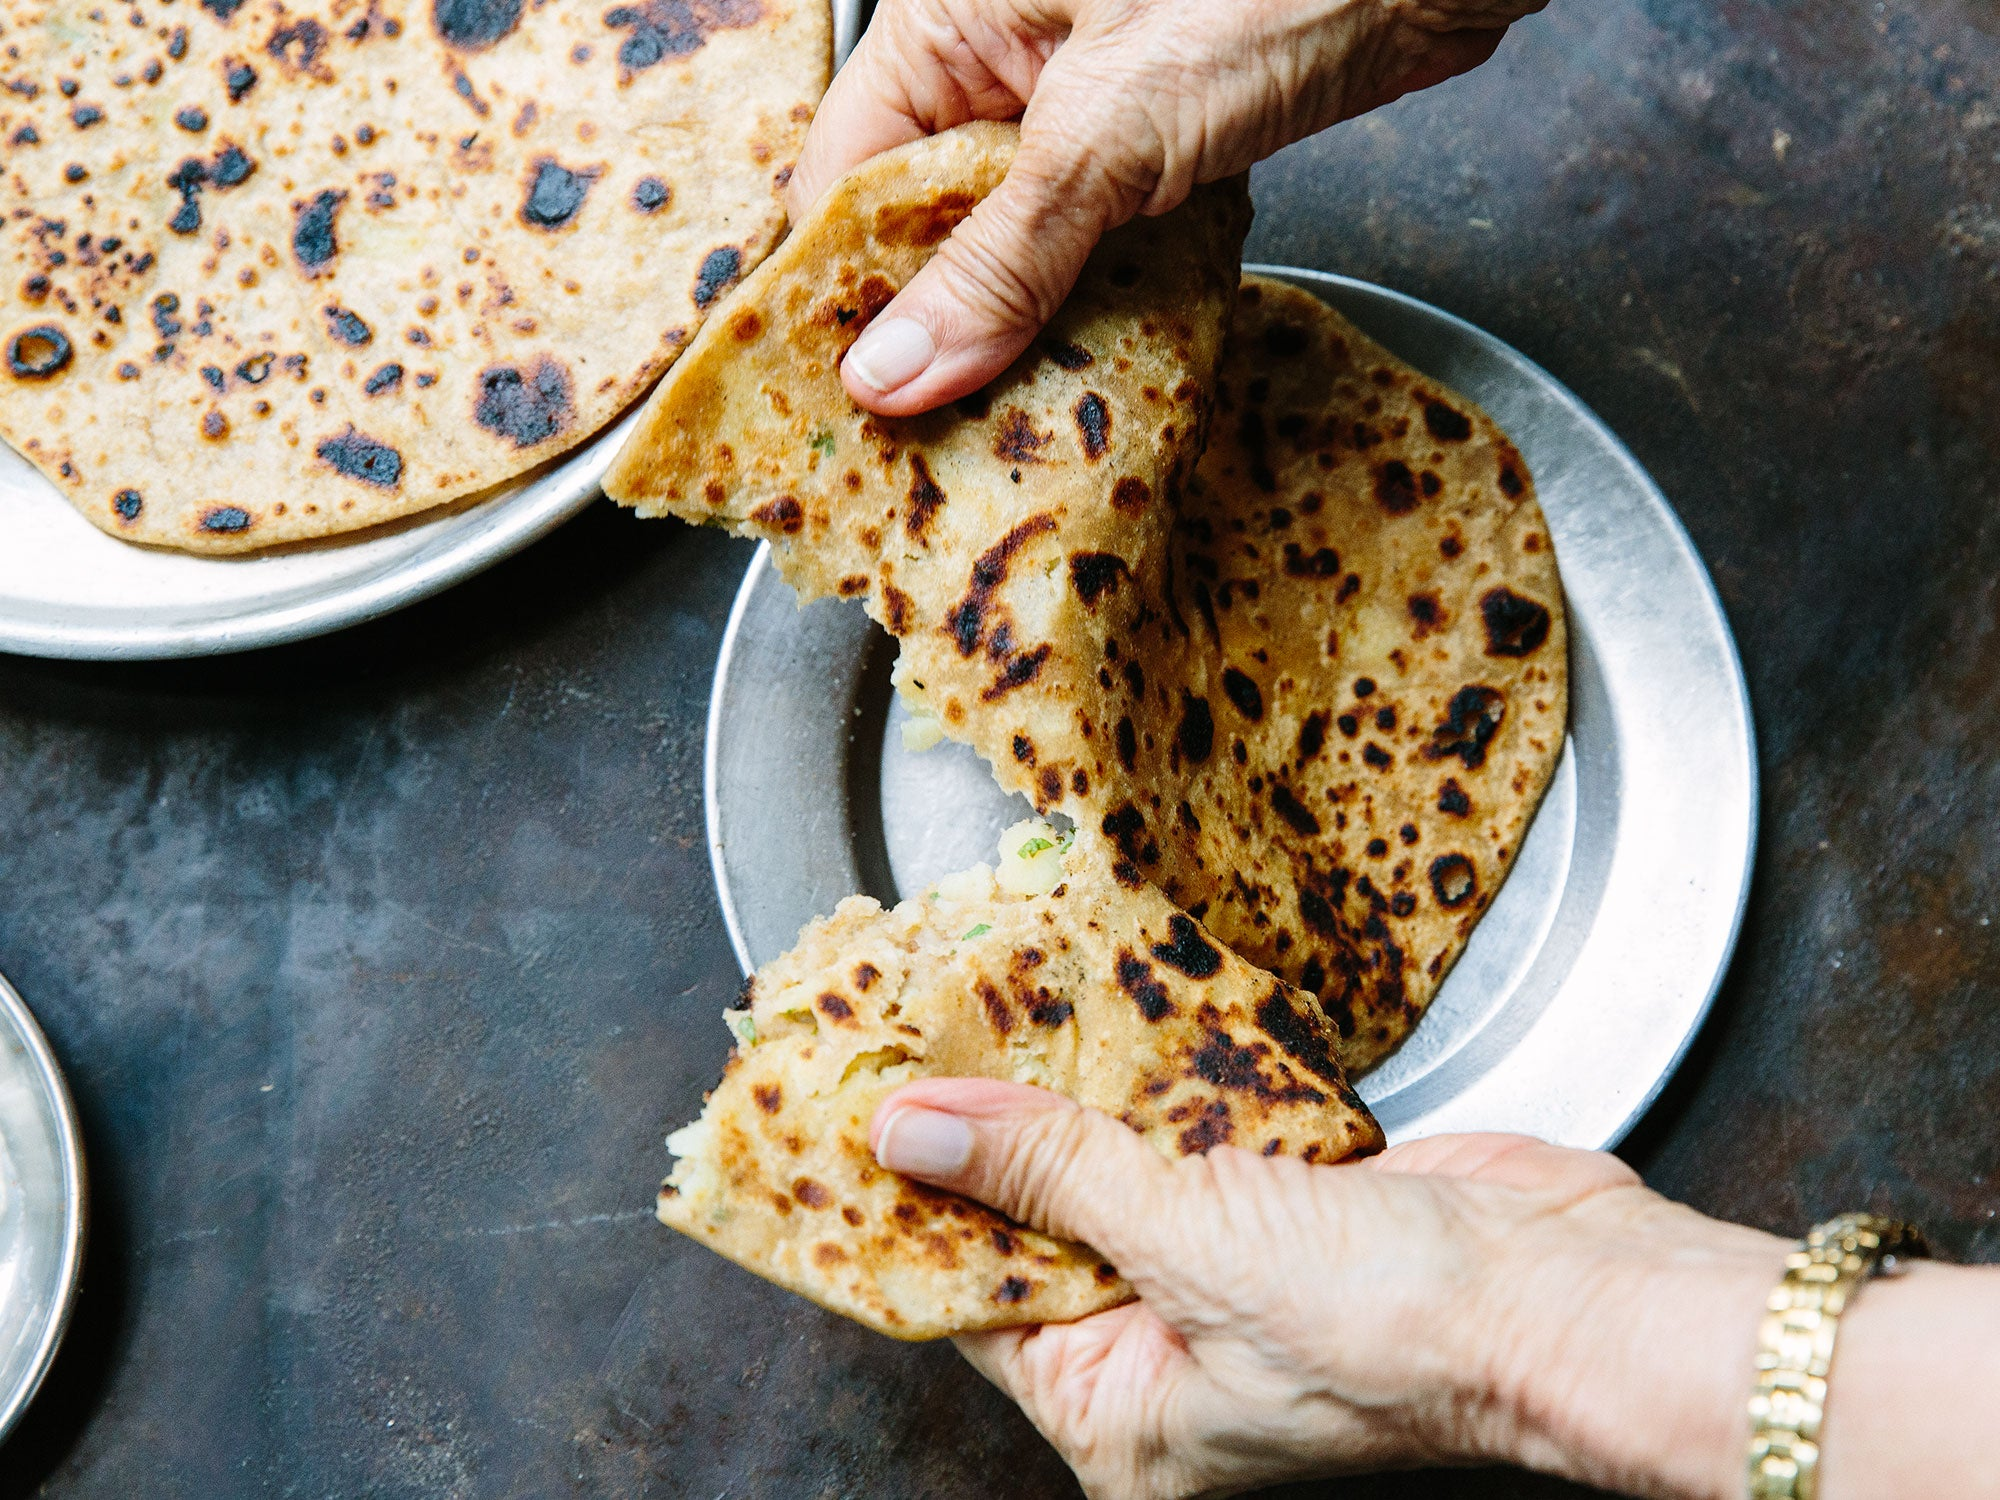 Madhur Jaffrey's Secrets to Perfect, Paper-Thin Parathas